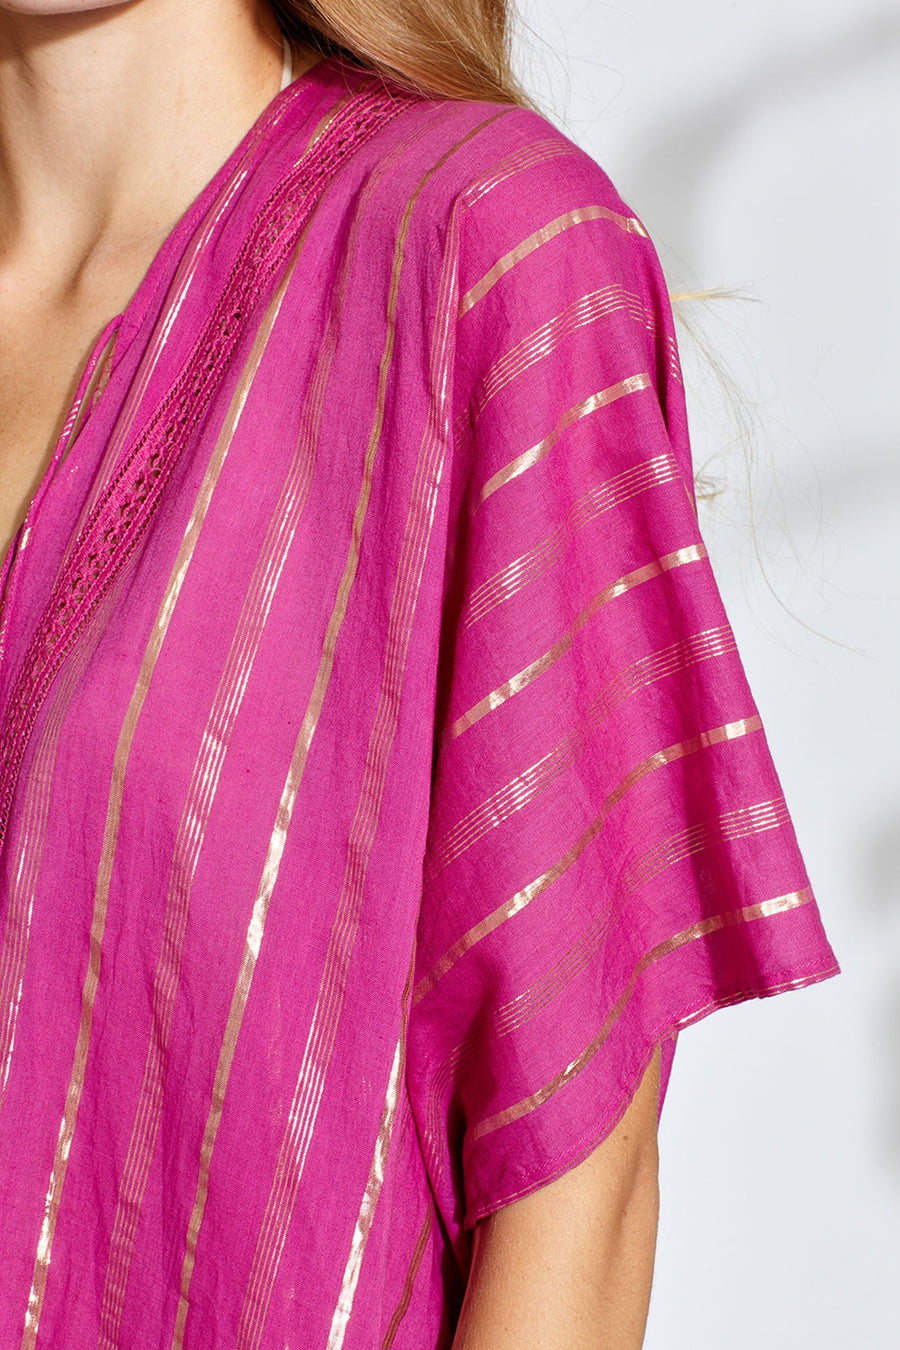 This is a detail photo of the shoulder of a magenta/pink colored coat with gold metallic stripes.